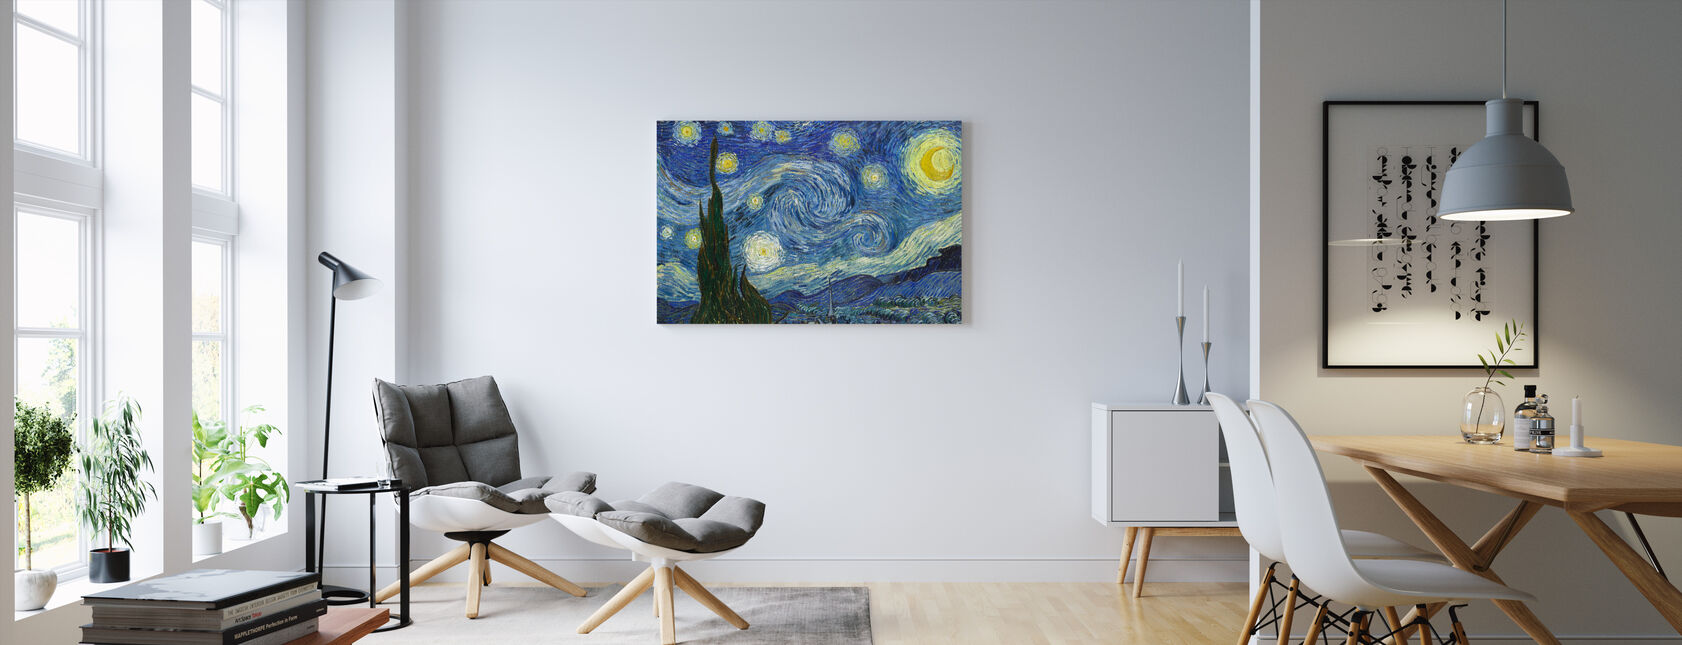 Vincent Van Gogh - Starry natt - Canvastavla - Vardagsrum